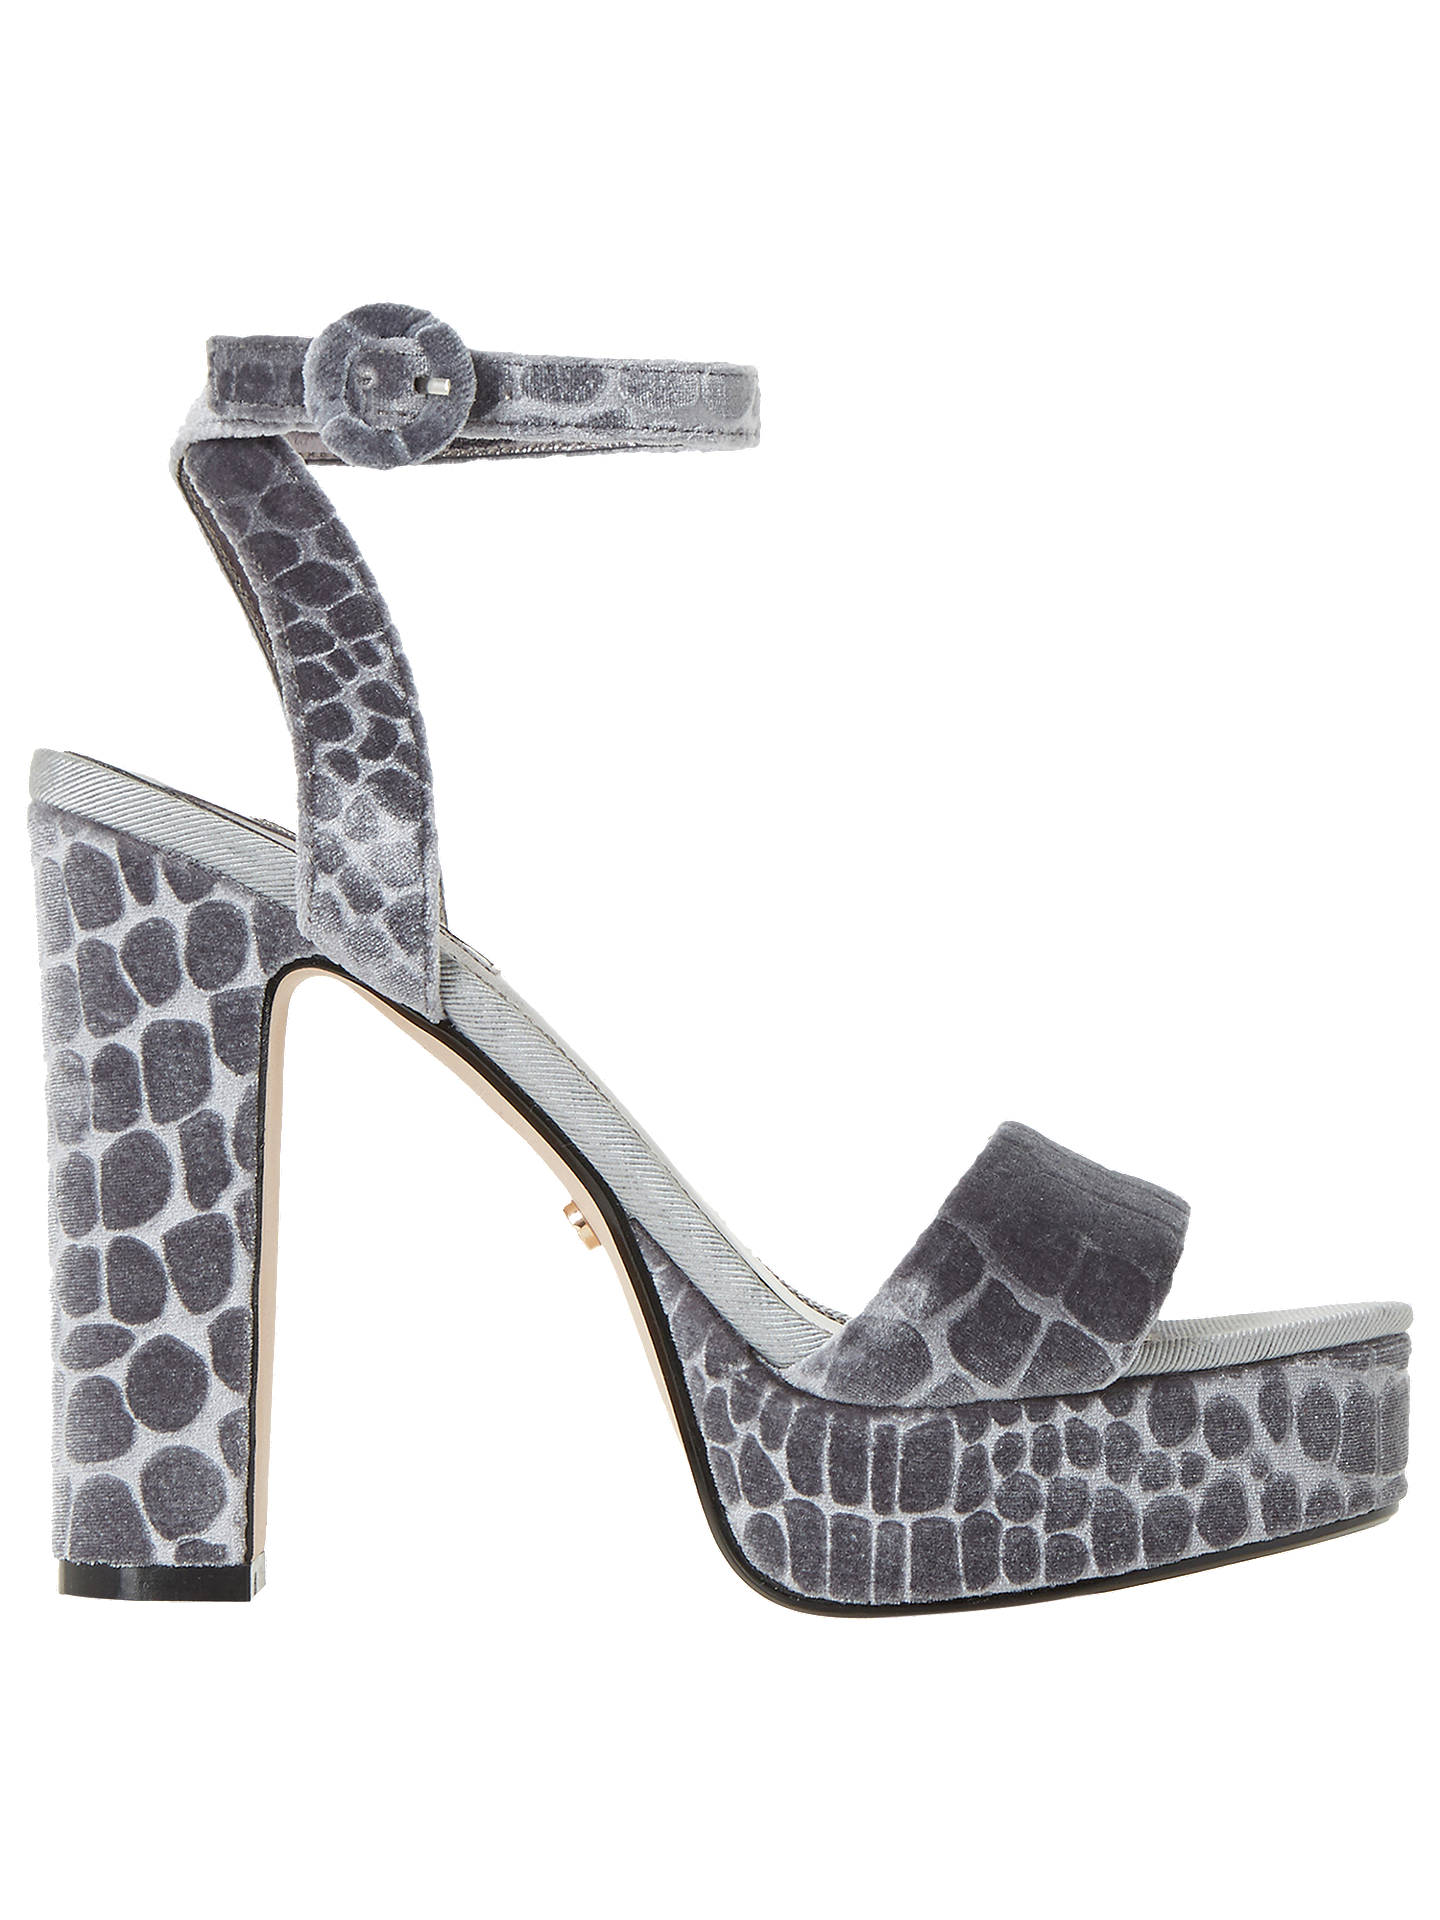 e02a8d639b8 Buy Dune Morisey Platform Block Heeled Sandals